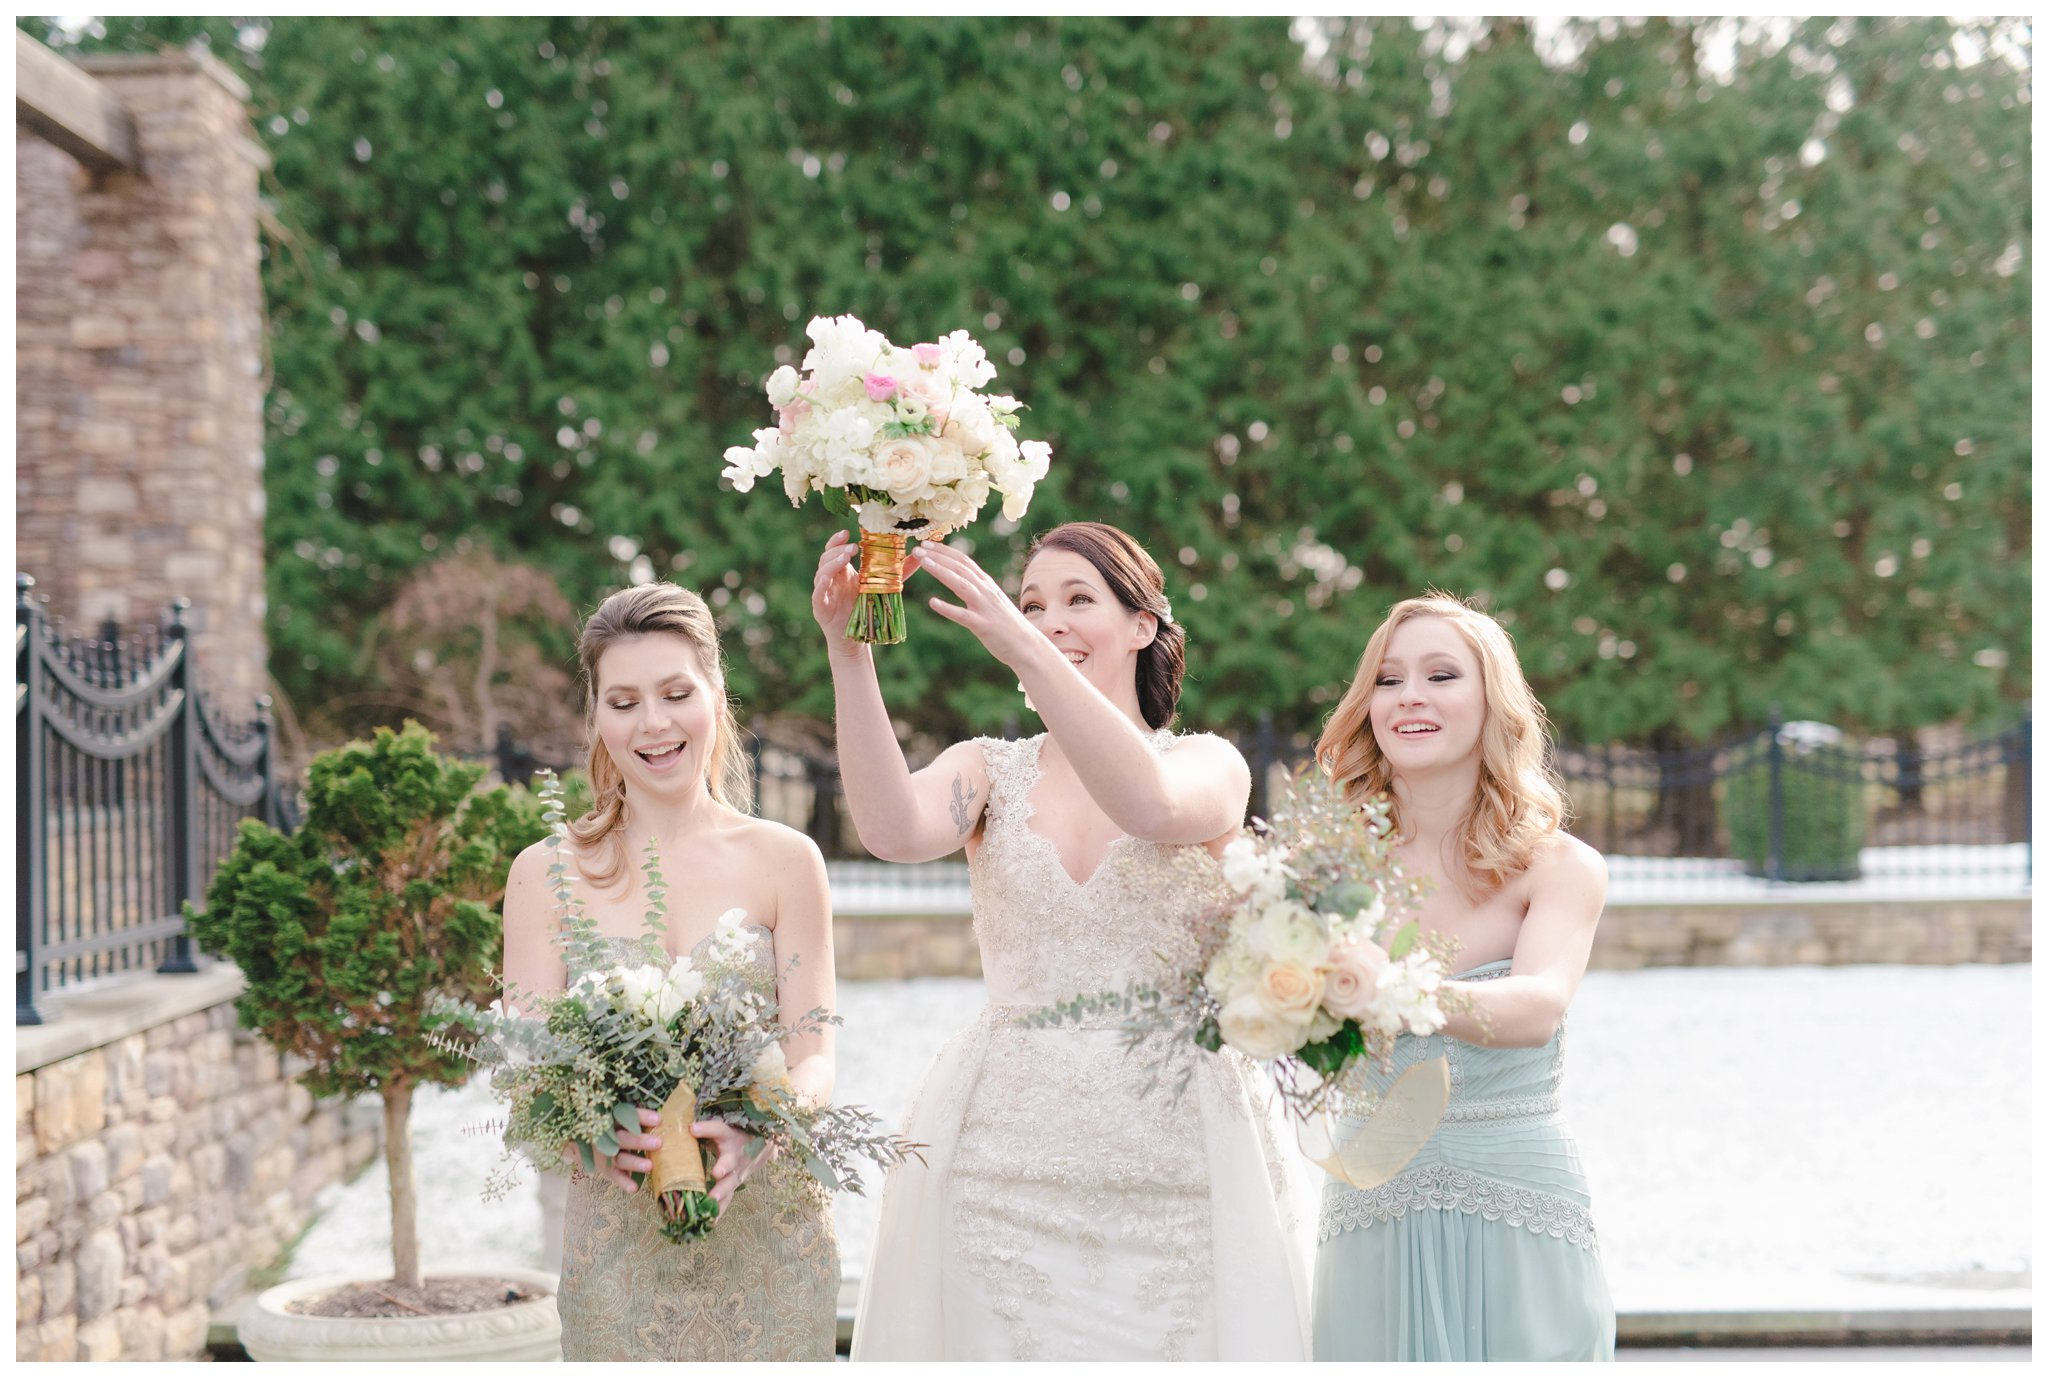 Bridesmaids and bouquets at ashford estate, allentown new jersey